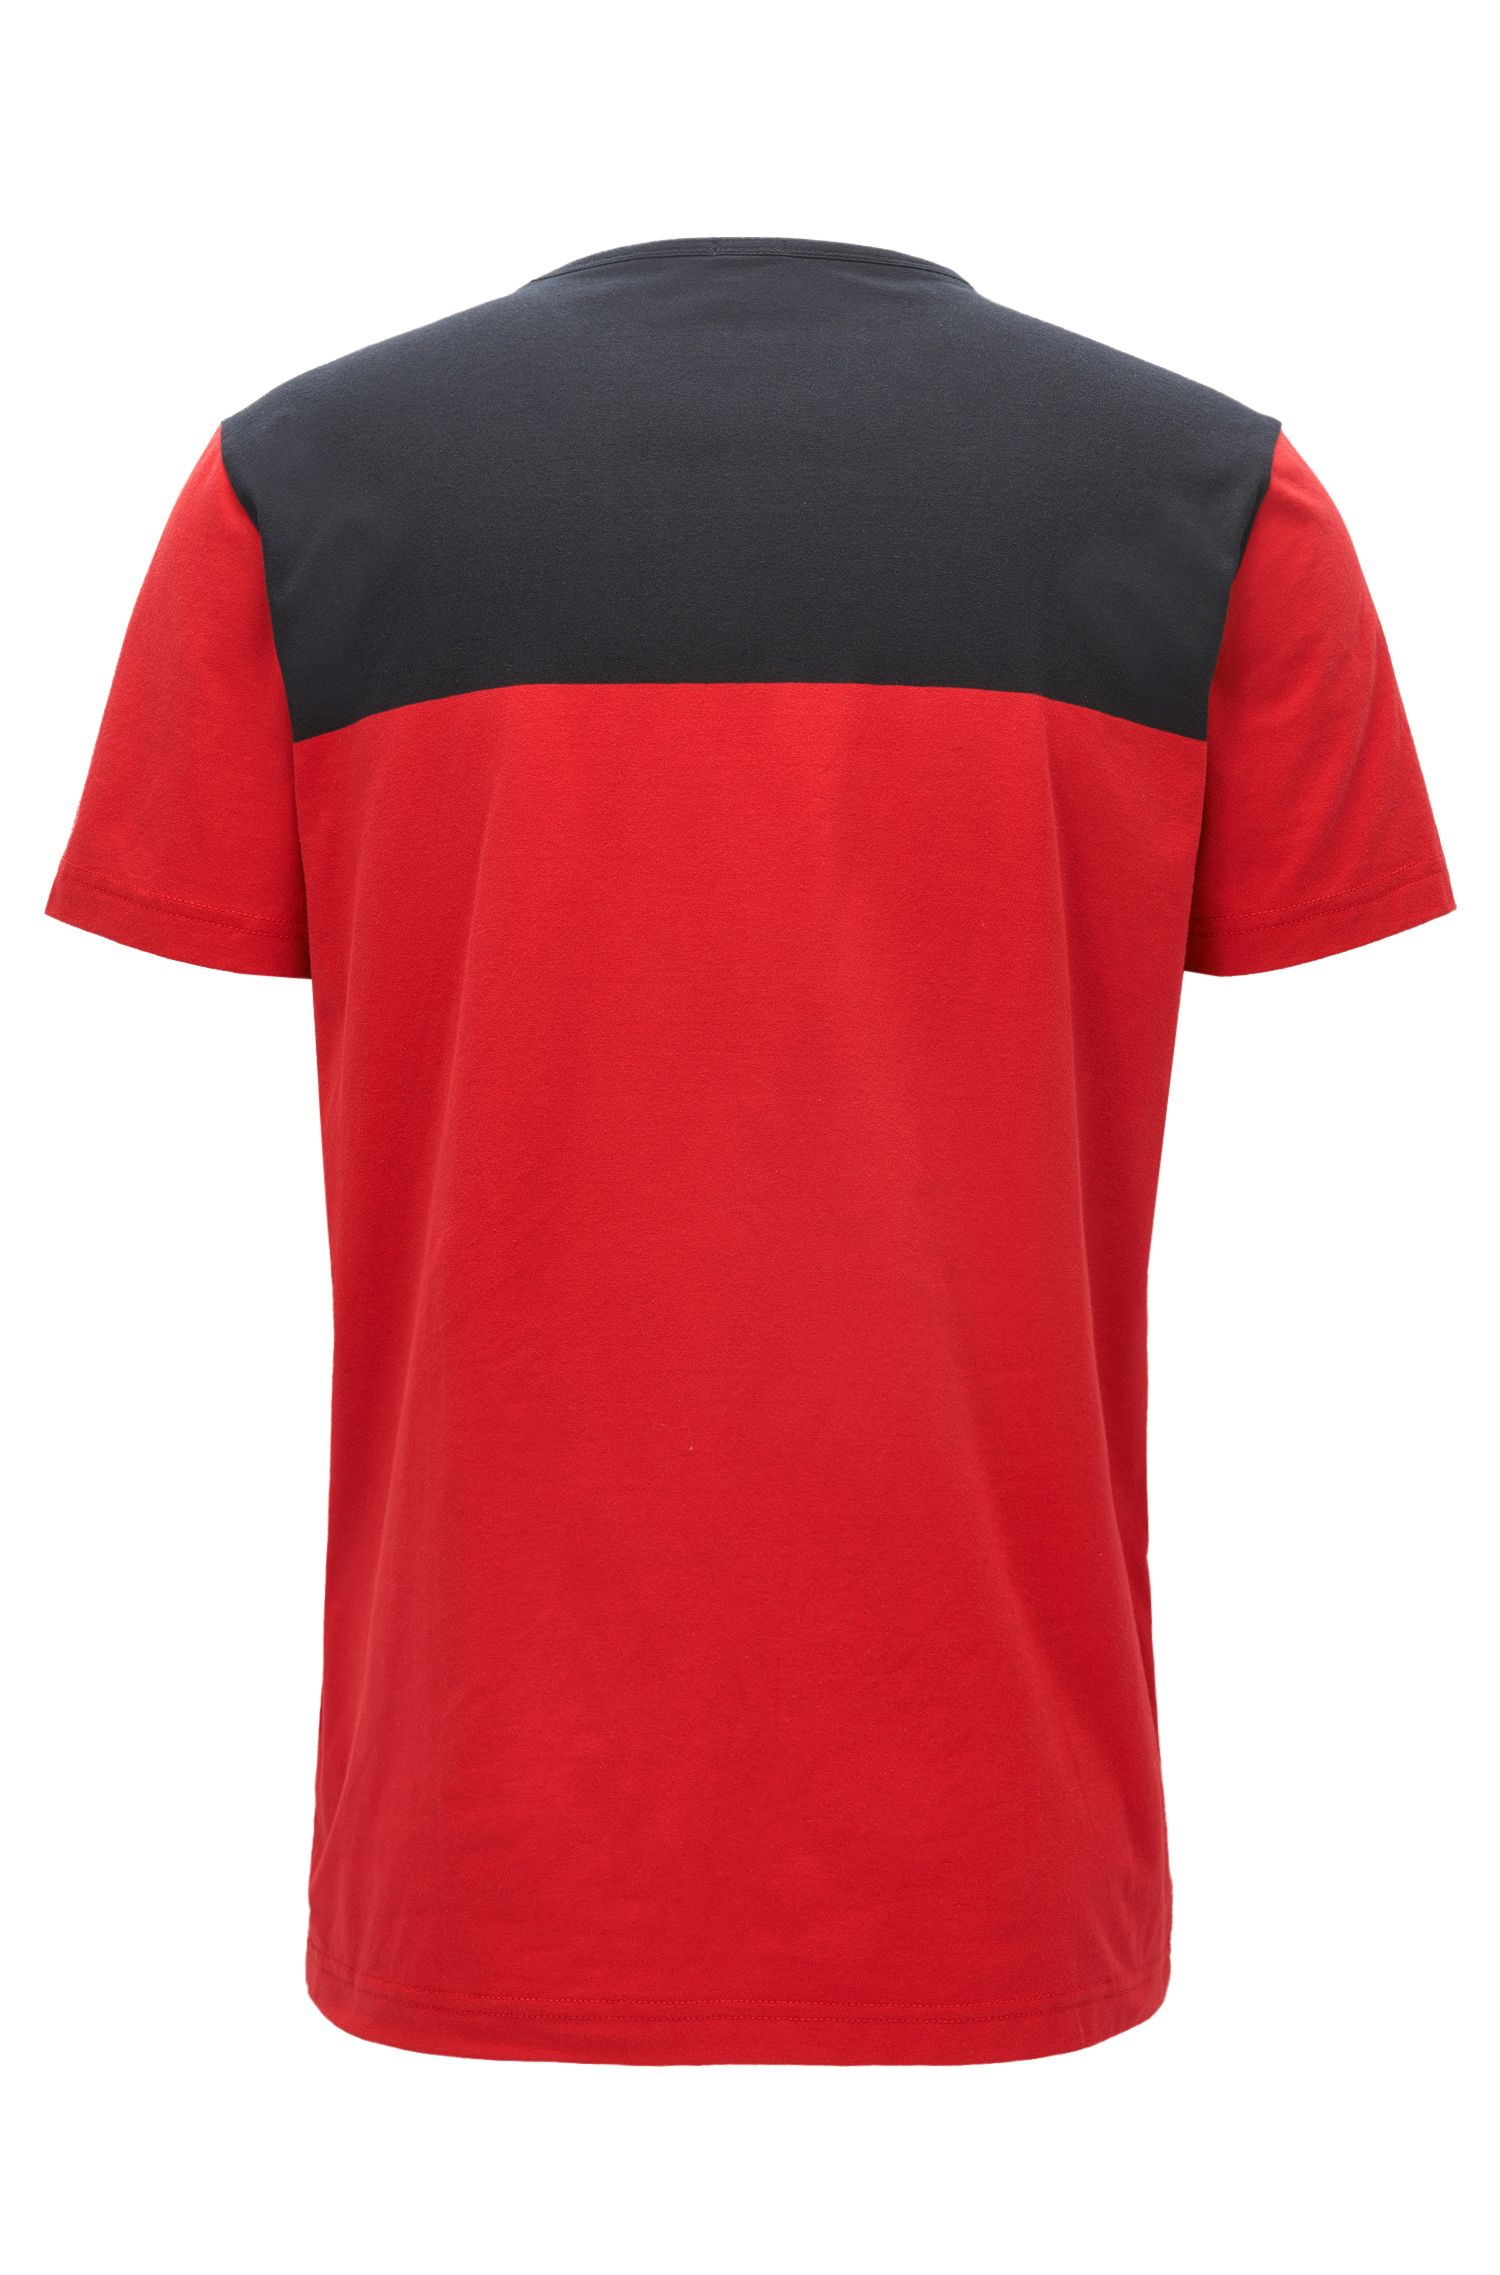 Logo Colorblocked T-Shirt | Tee, Red